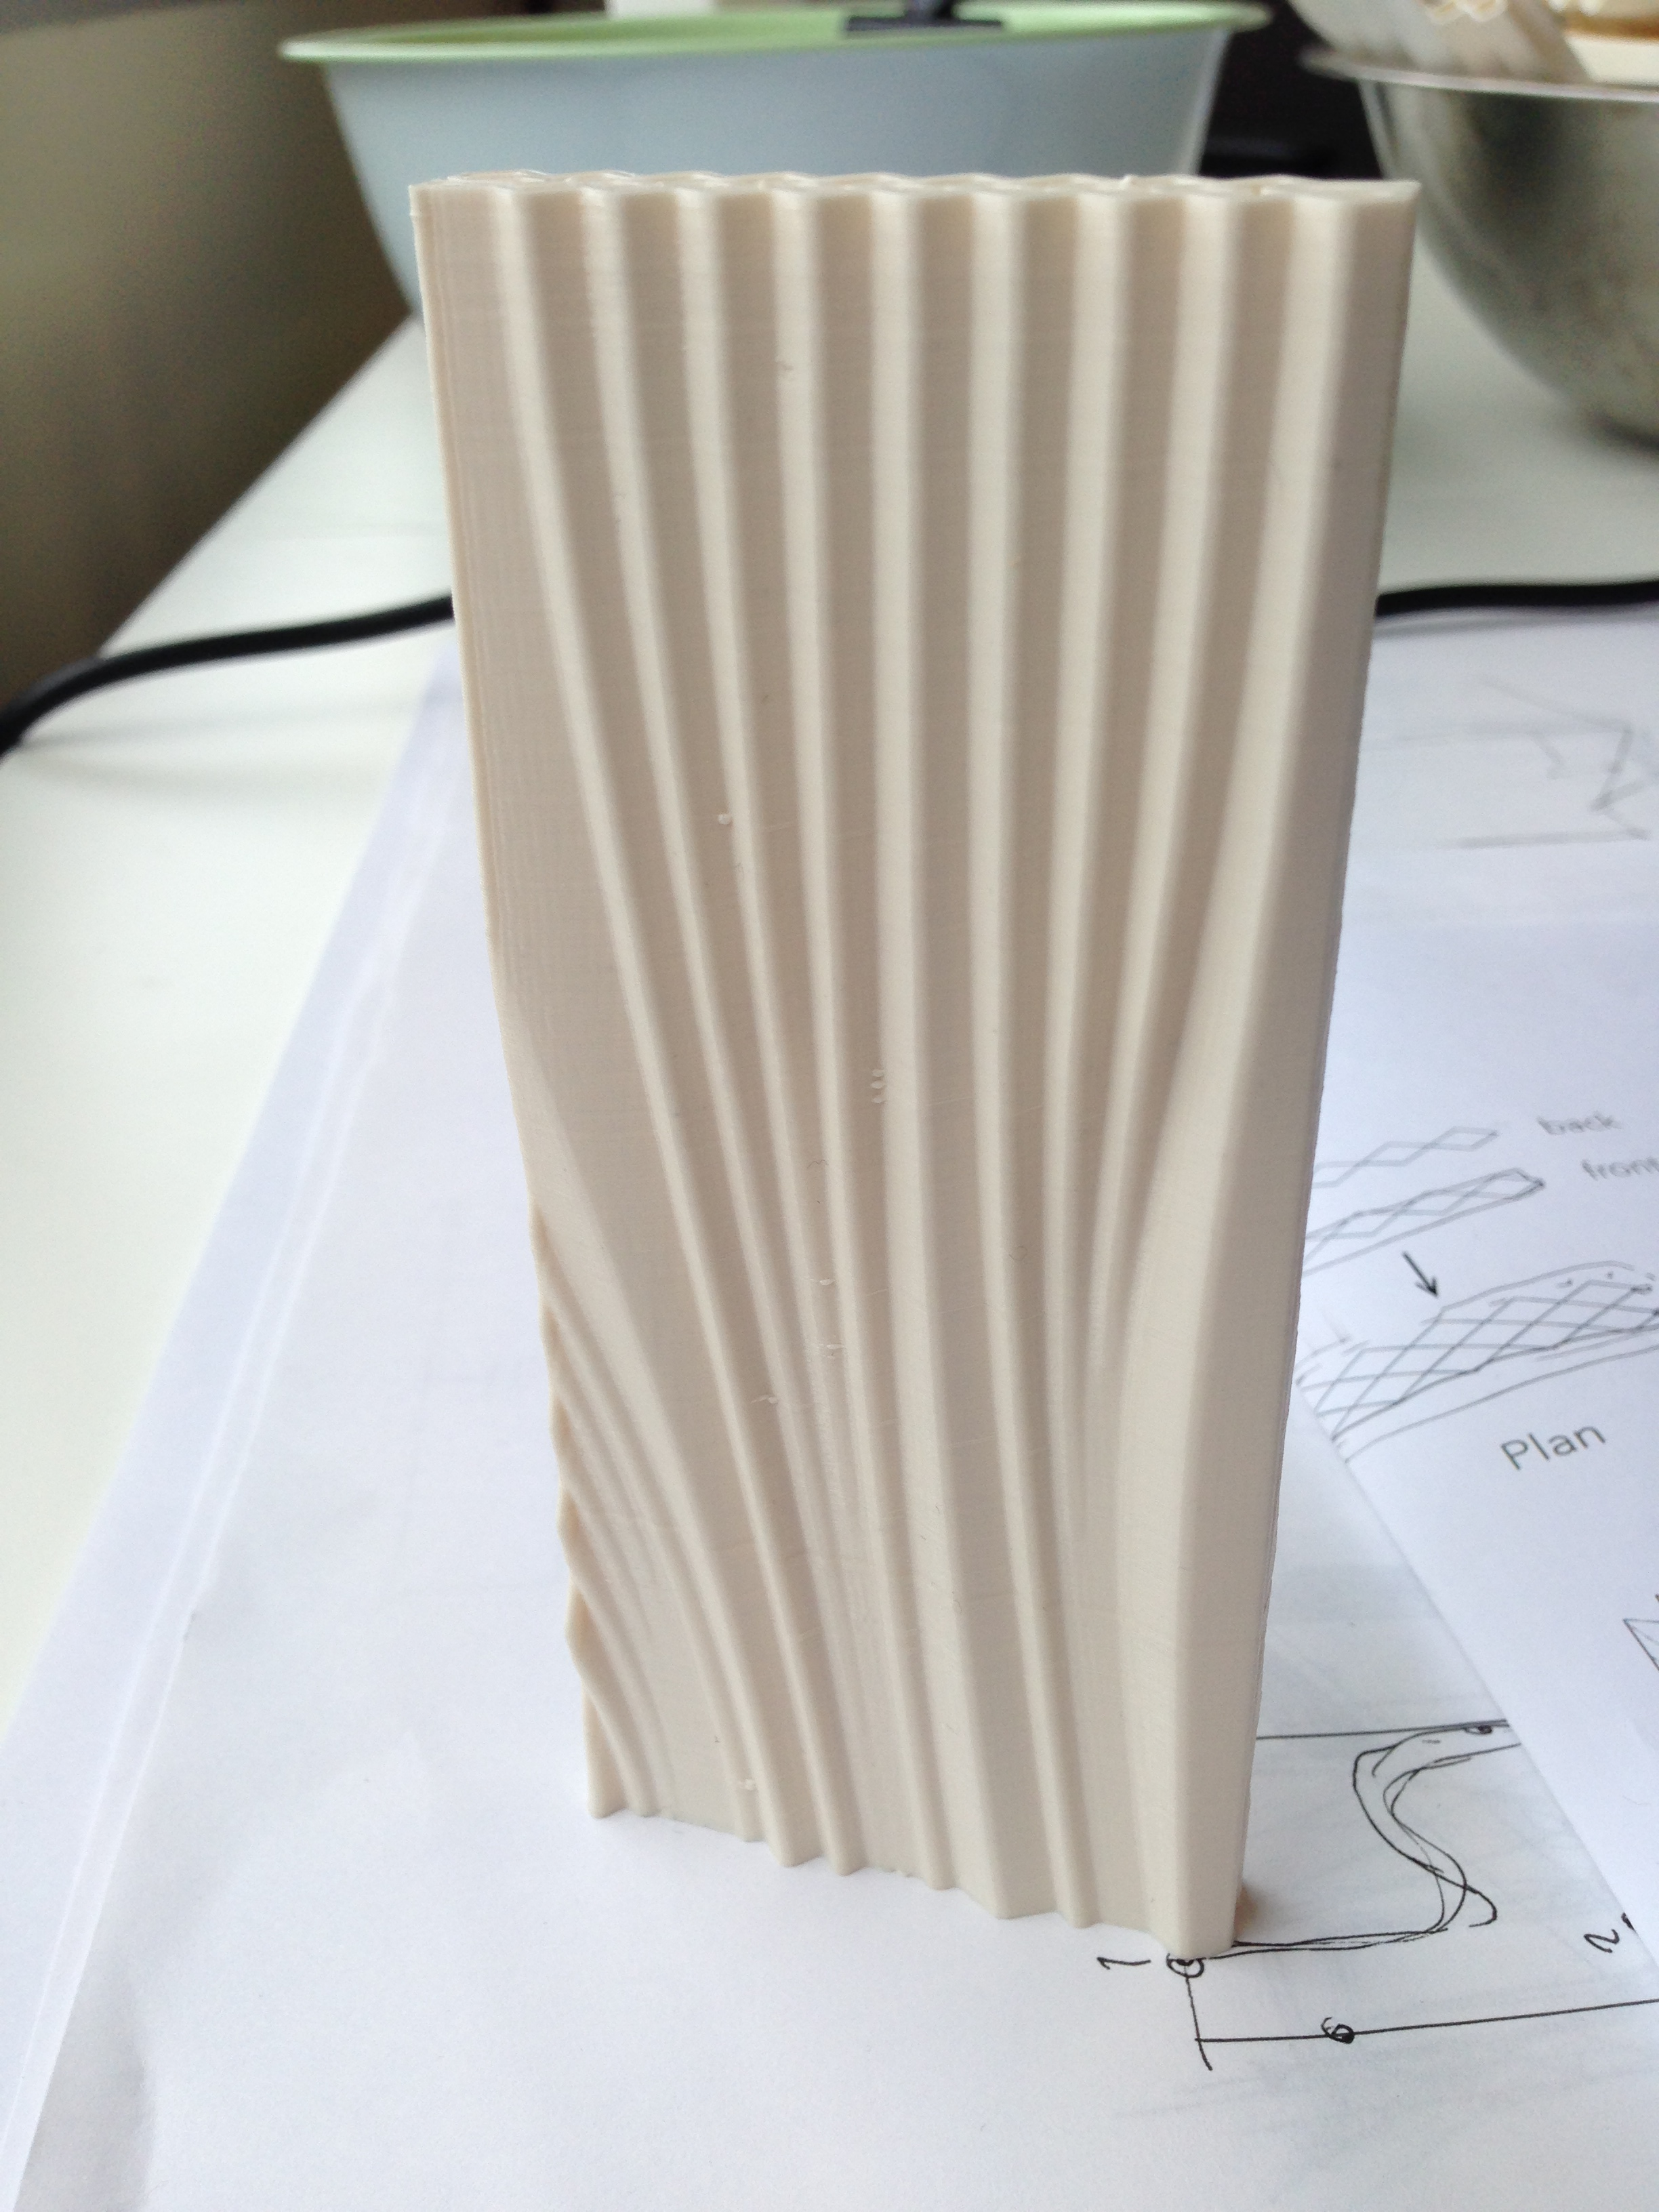 3dprintcanalhouse By Dus Architects Structured Panel Wiring Examples Forward Home The Wall Has Shafts Of Different Dimensions Larger Structural Shaft Run Towards Locations Where Adjacent Rooms Need Support